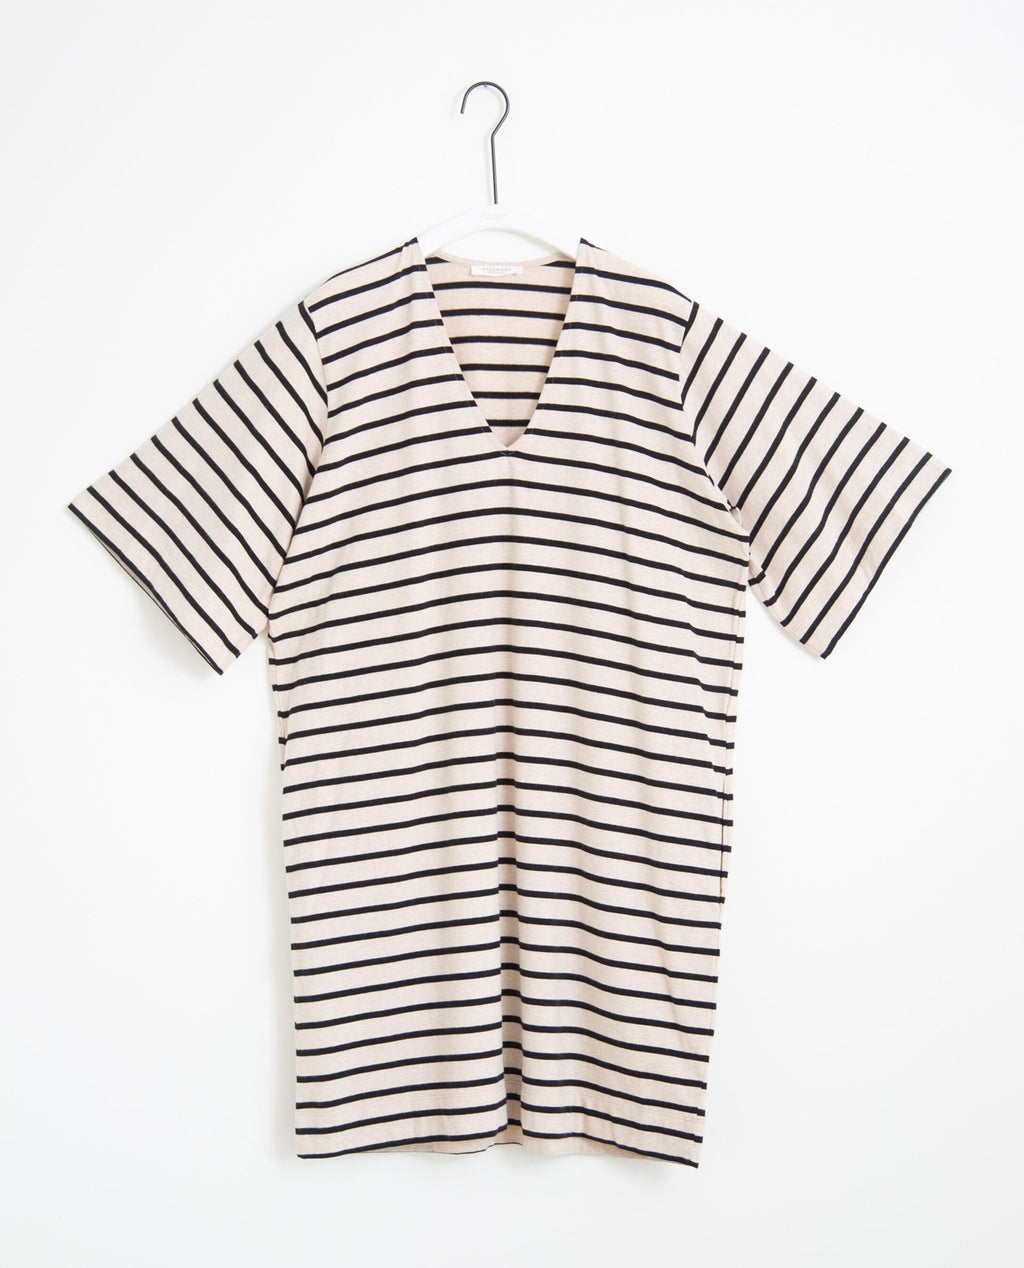 Sasha-Sue Organic Cotton Dress In Bone Marl & Black